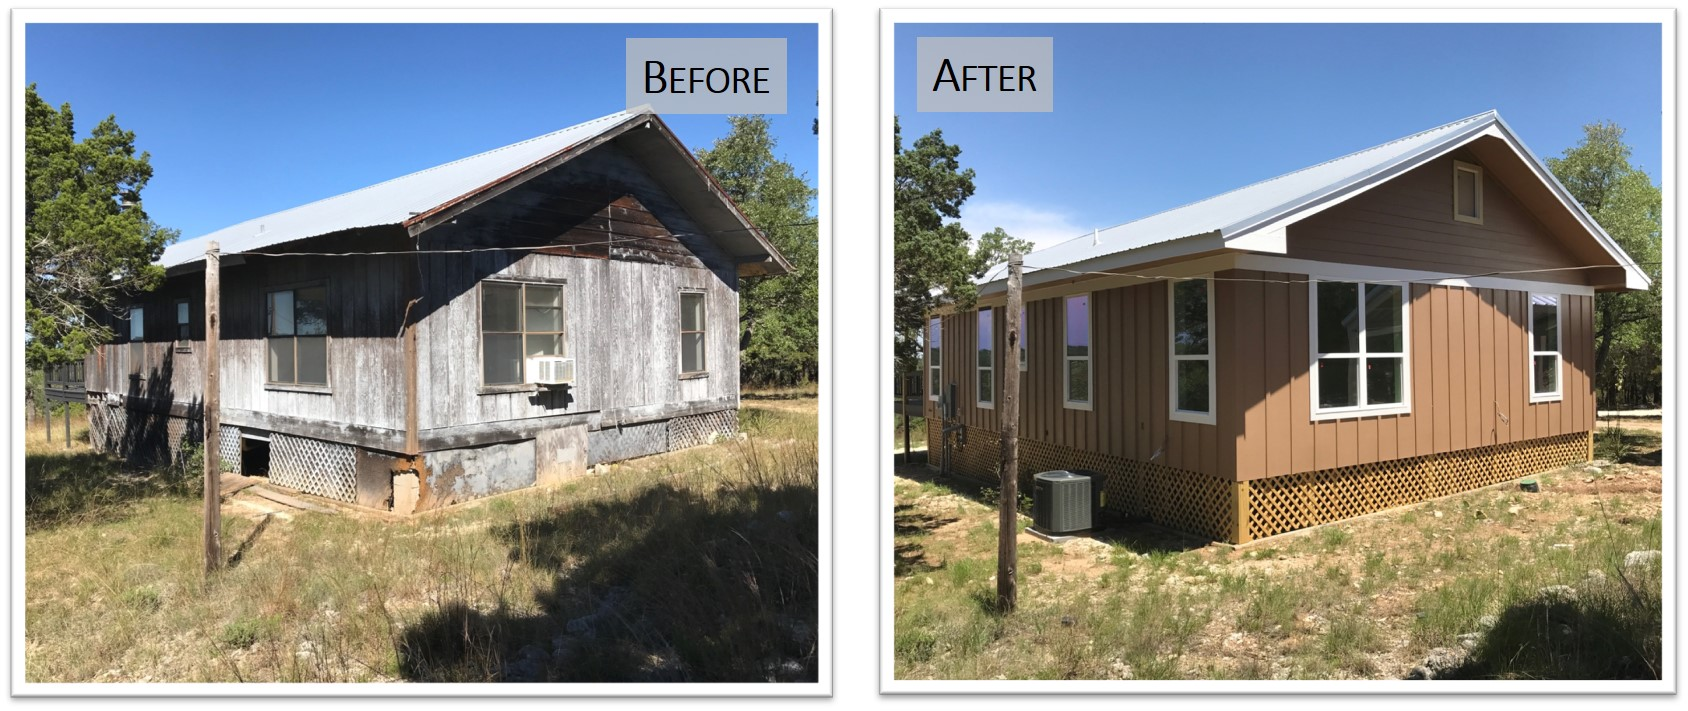 910 PLL, Exterior Back1, Before and After, Bear Creek Homes.jpg